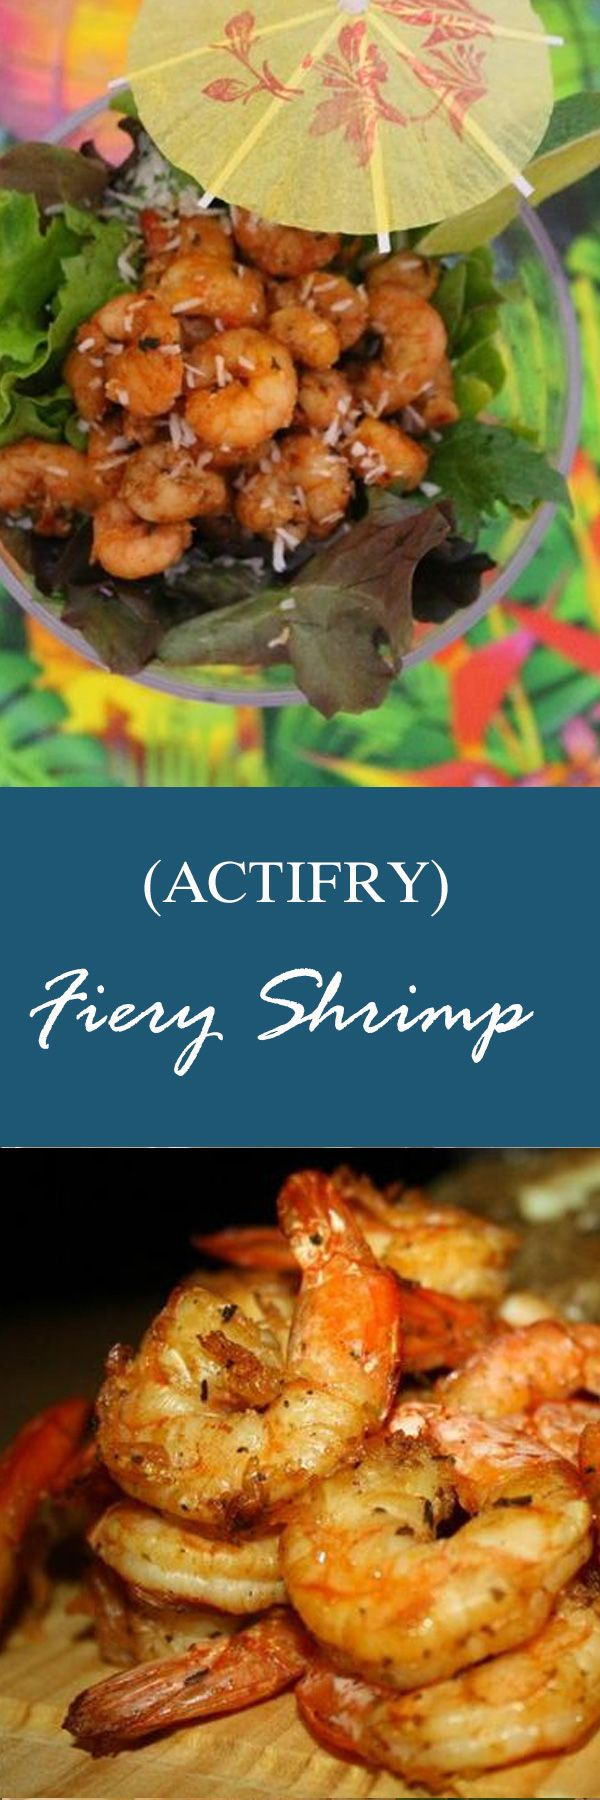 Fiery Shrimp - Actifry recipe. Simply heavenly!